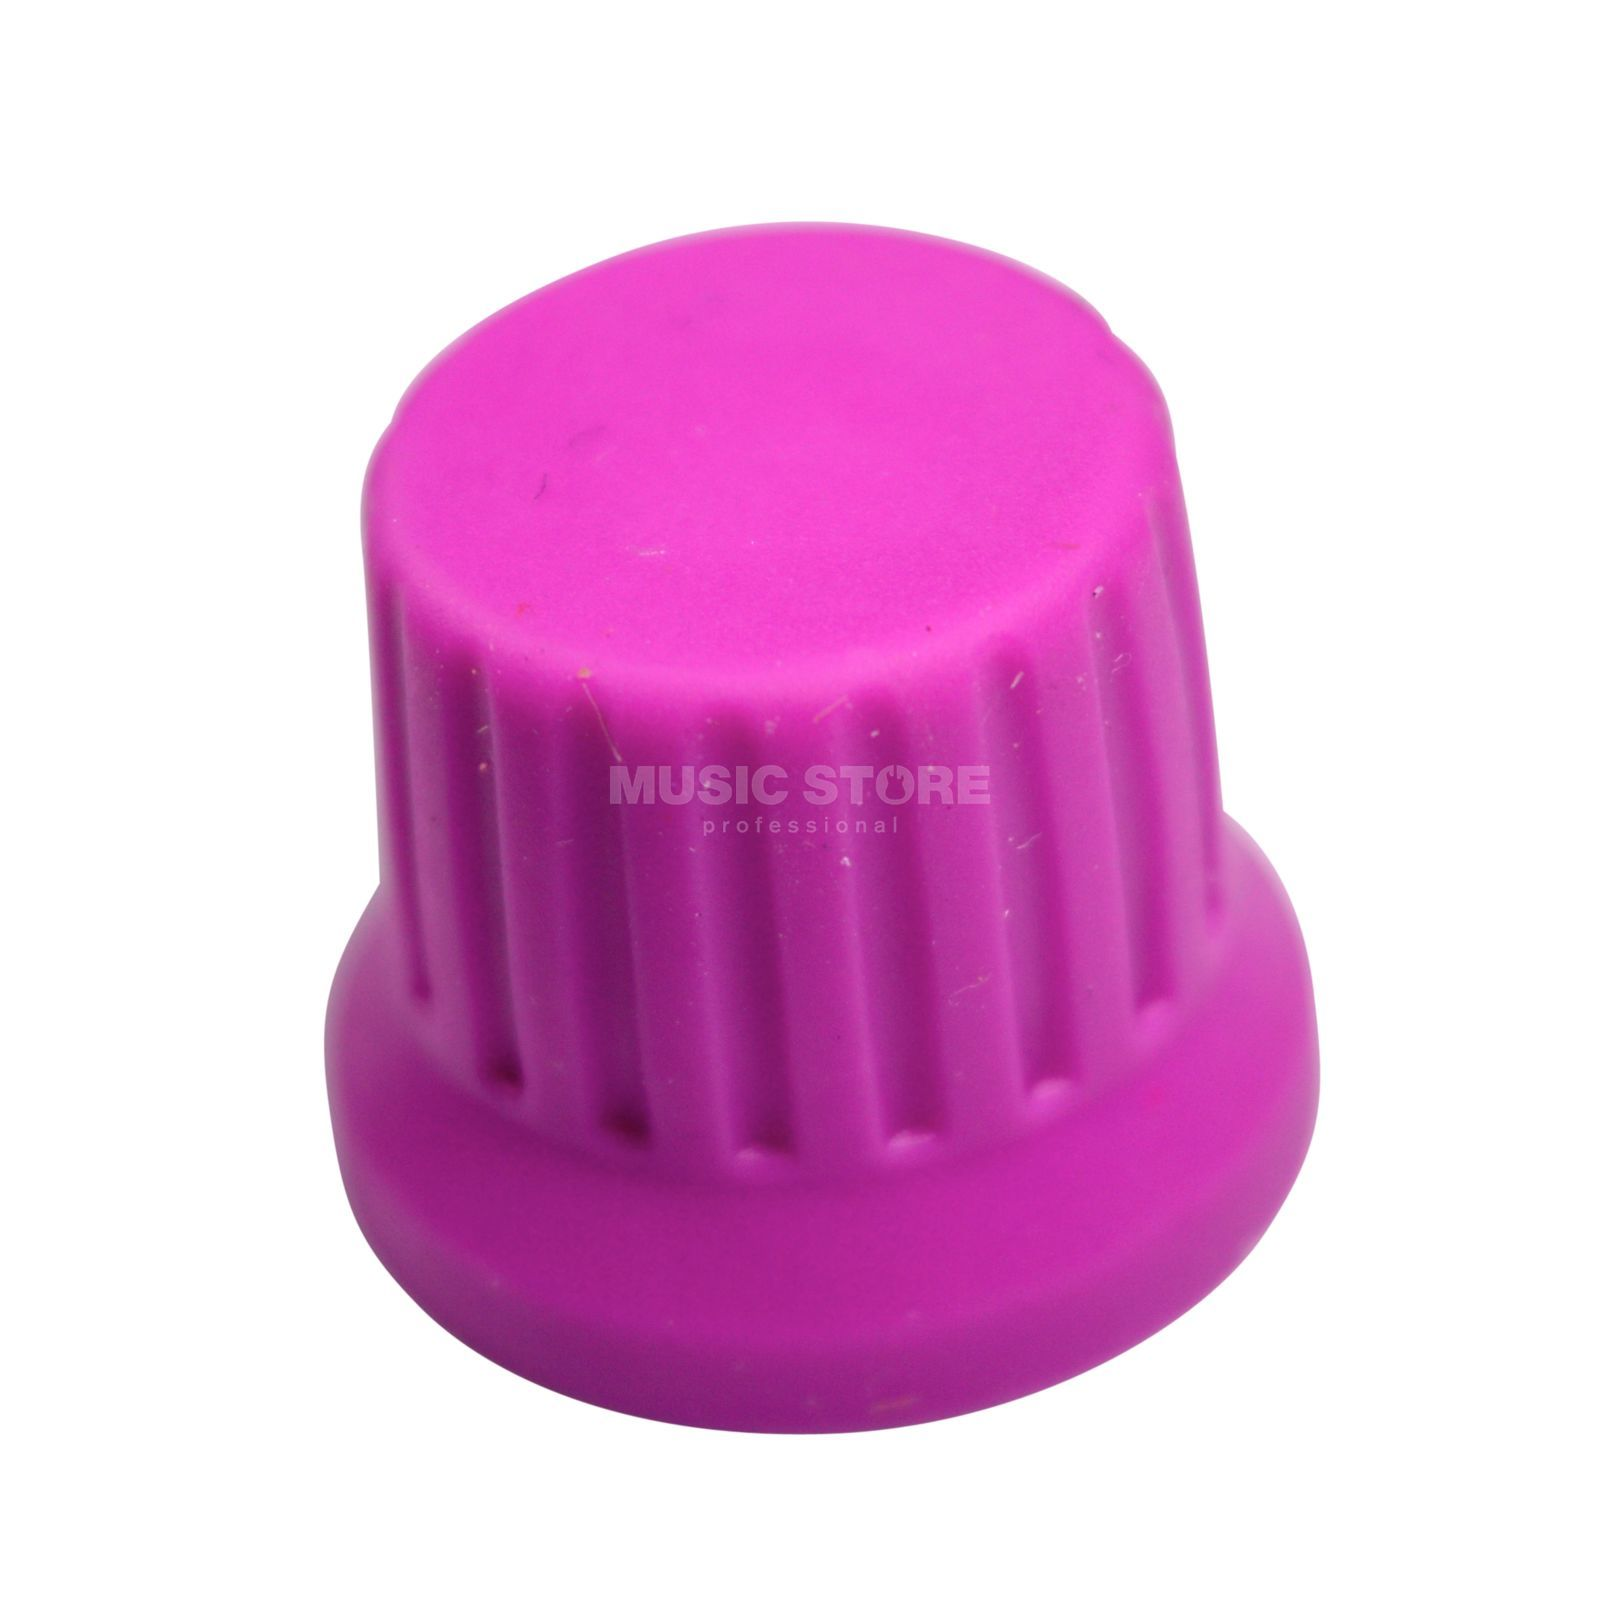 DJ TECHTOOLS Chroma Caps Encor Knob purple Immagine prodotto